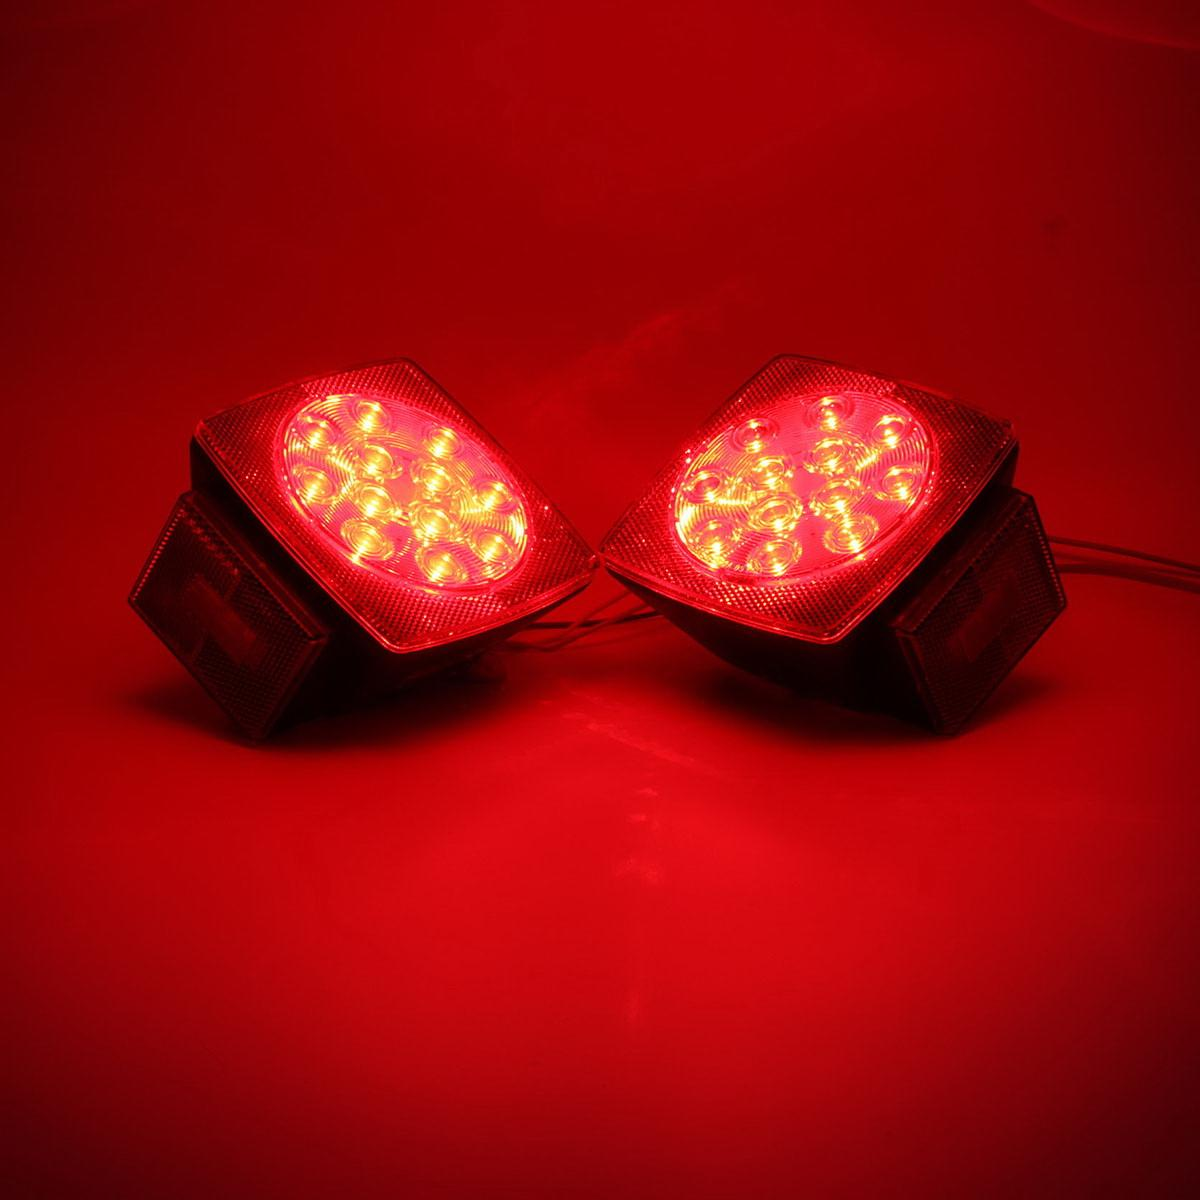 Red Led Camper Trailer Rv Boat Stop Tail Brake License Light Kit W Wire Harness Ebay